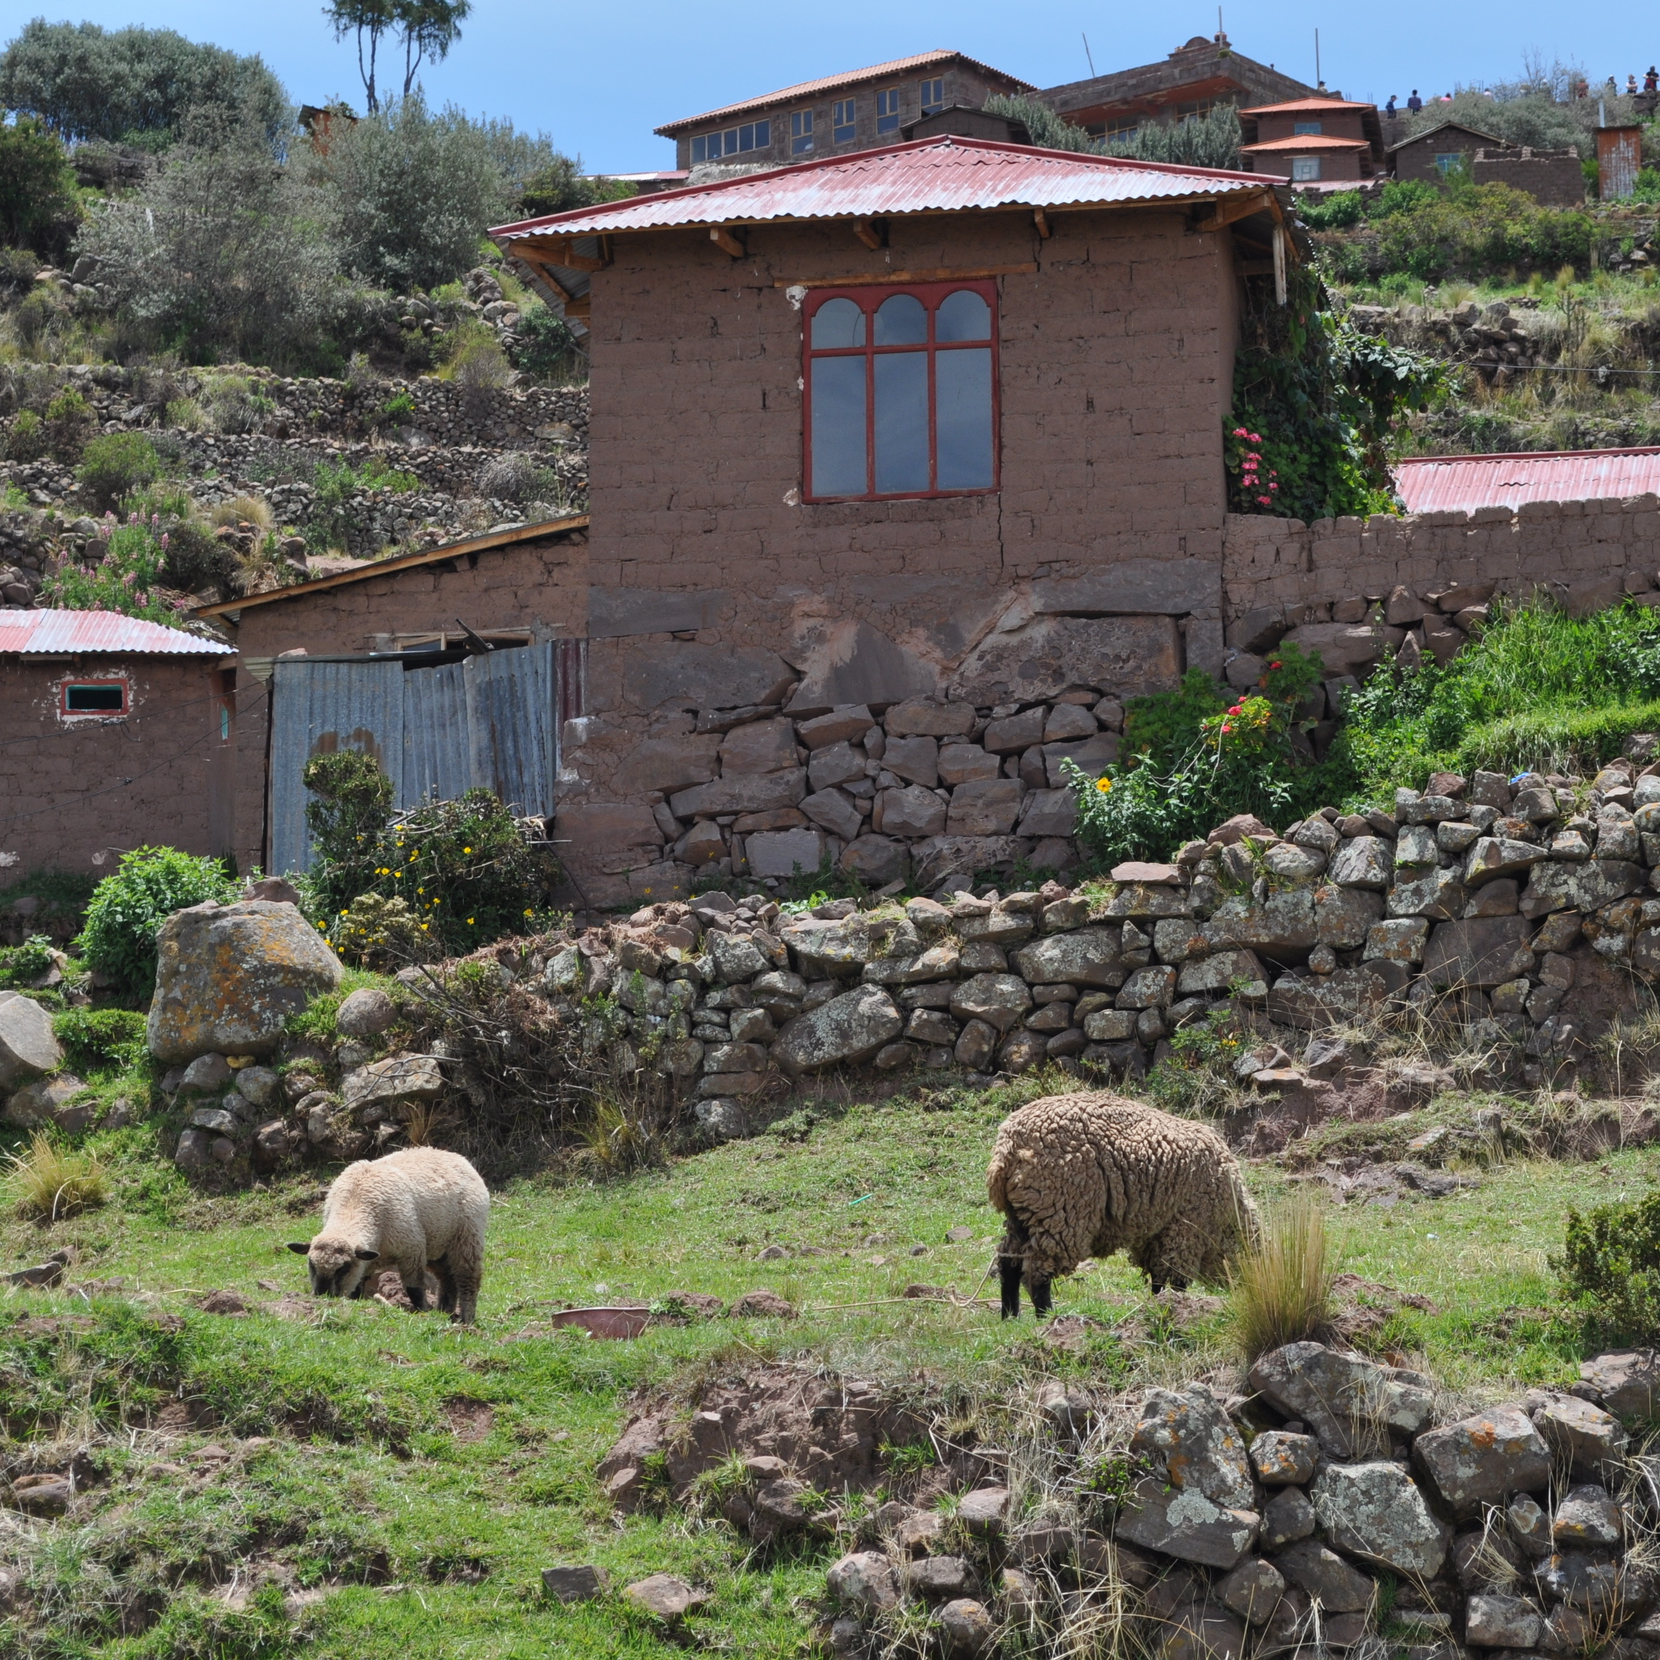 The sheep moved freely around the place. Photo by: Pamy Rojas